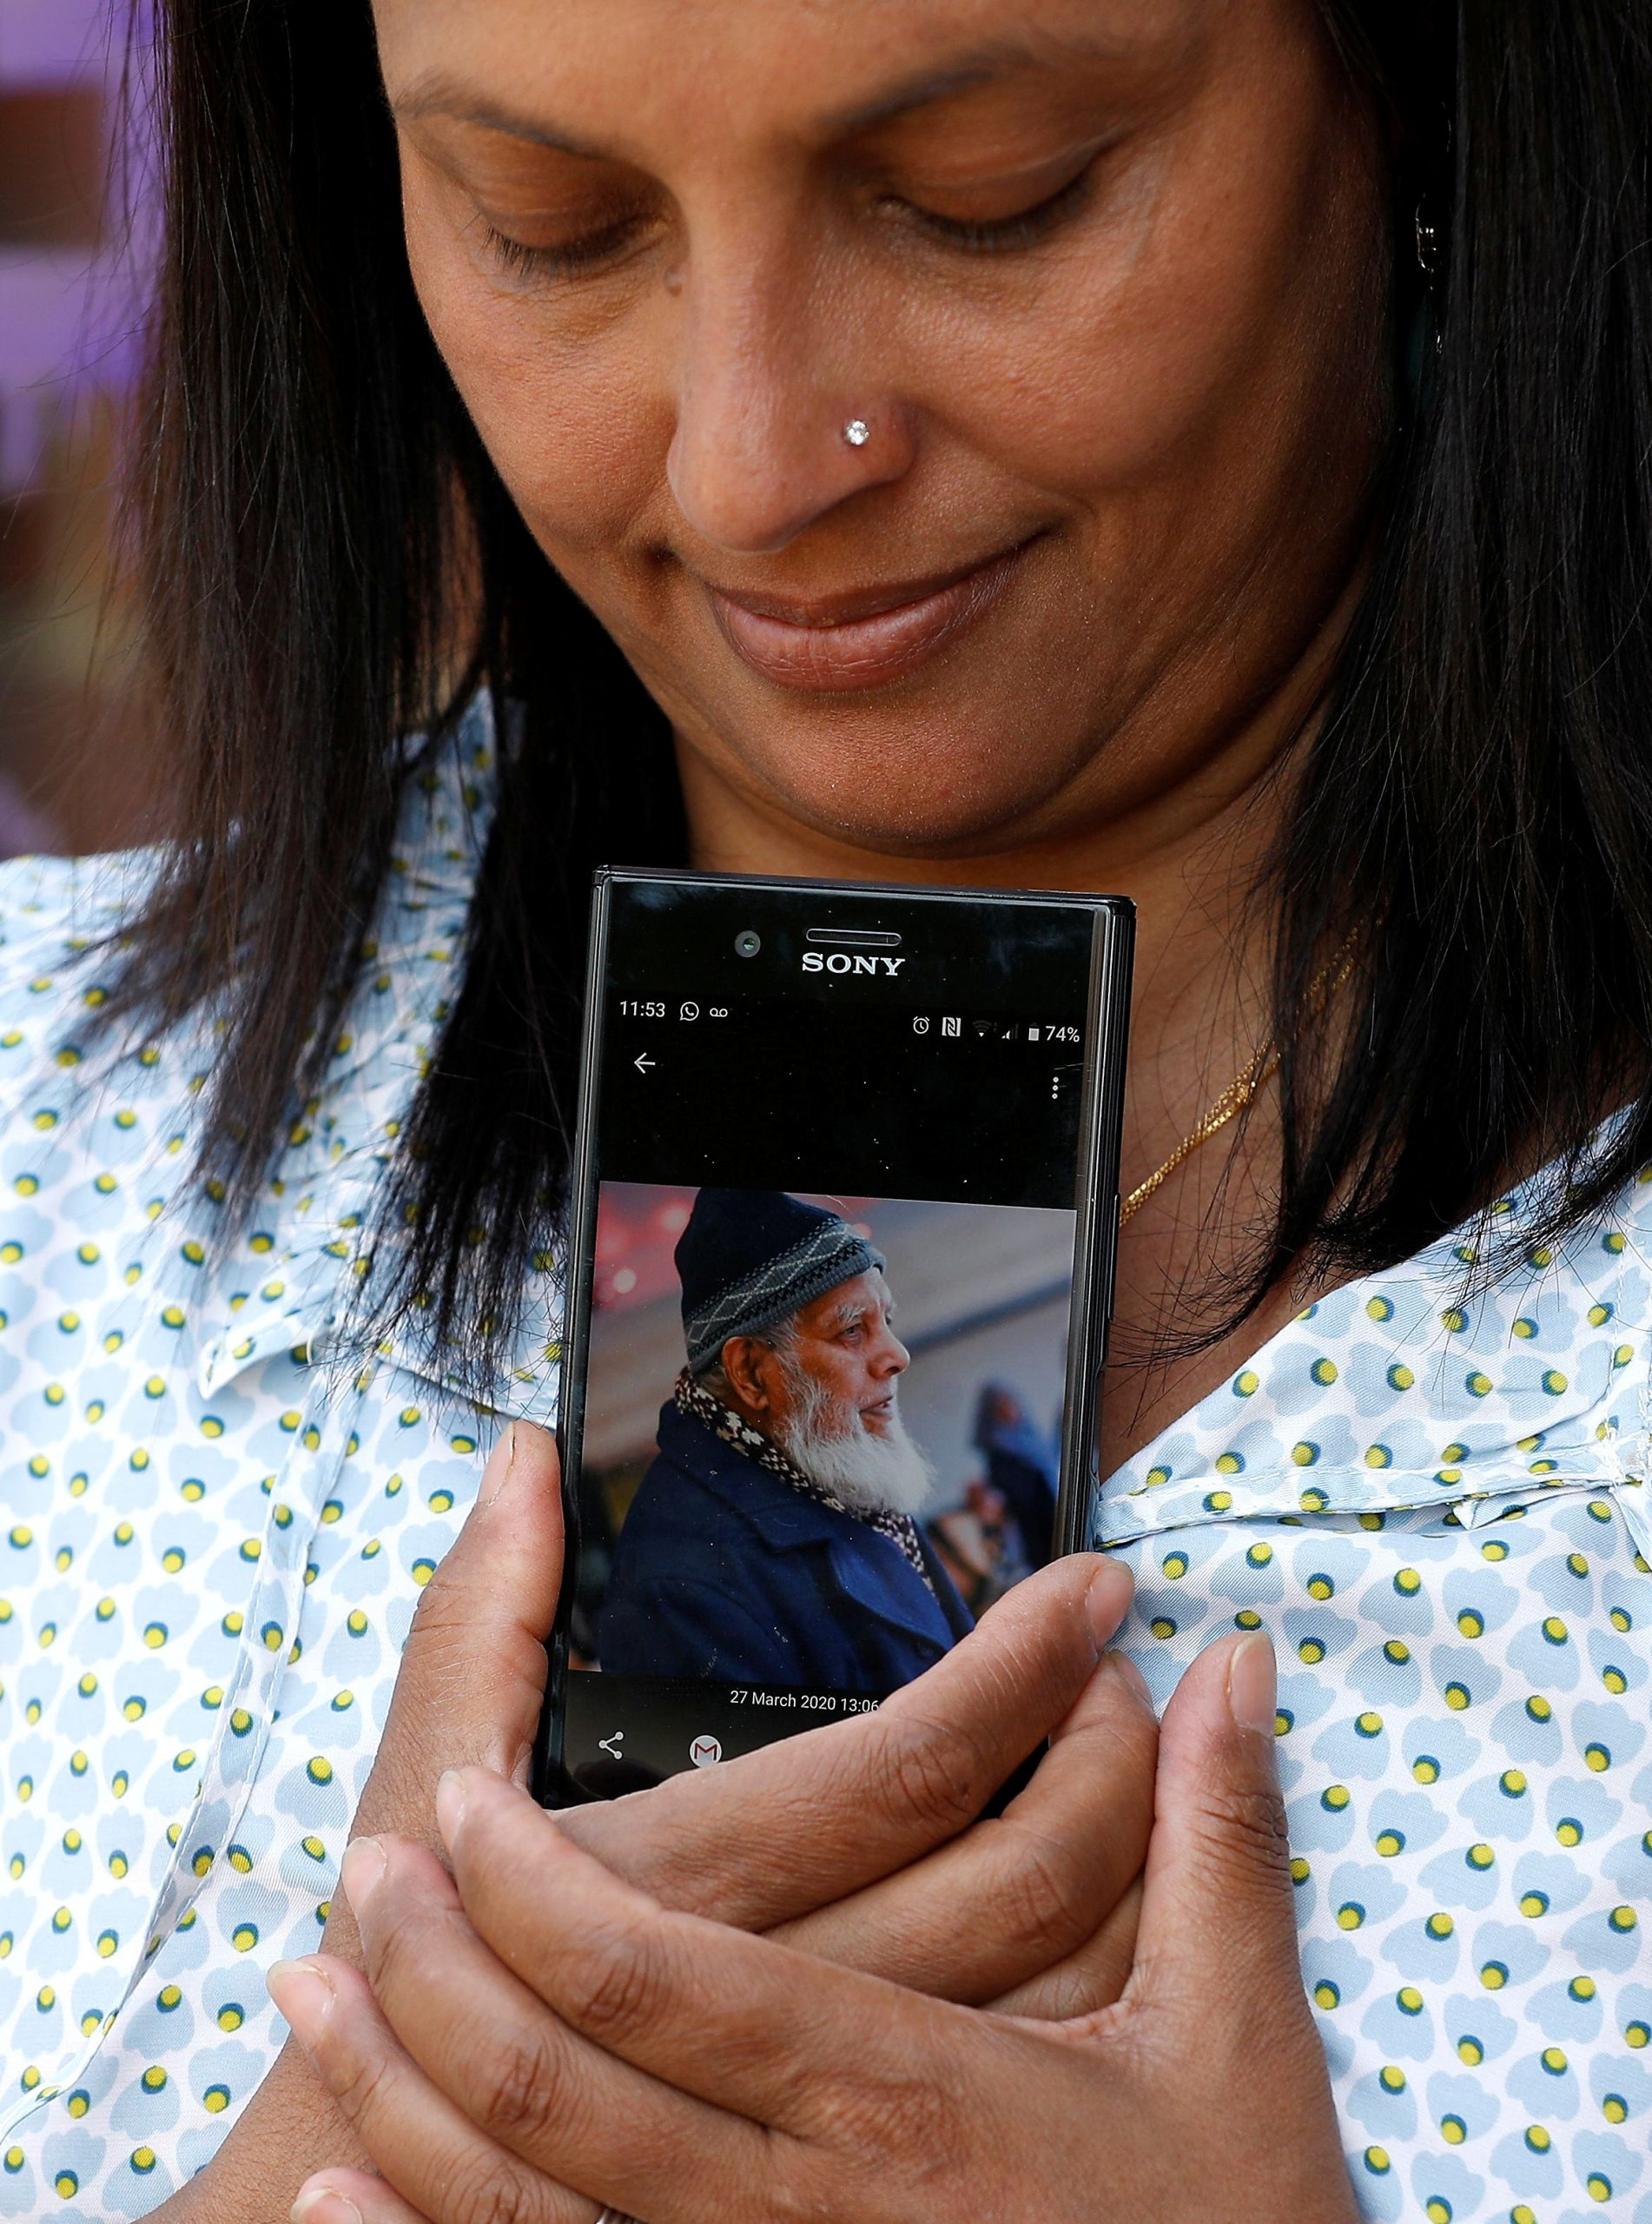 Luthfa Hood whose father, Jamshad Ali, recently passed away shows his picture at her home, as the spread of the coronavirus disease (COVID-19) continues, in Dorking, Britain April 9, 2020. (REUTERS/Peter Nicholls)